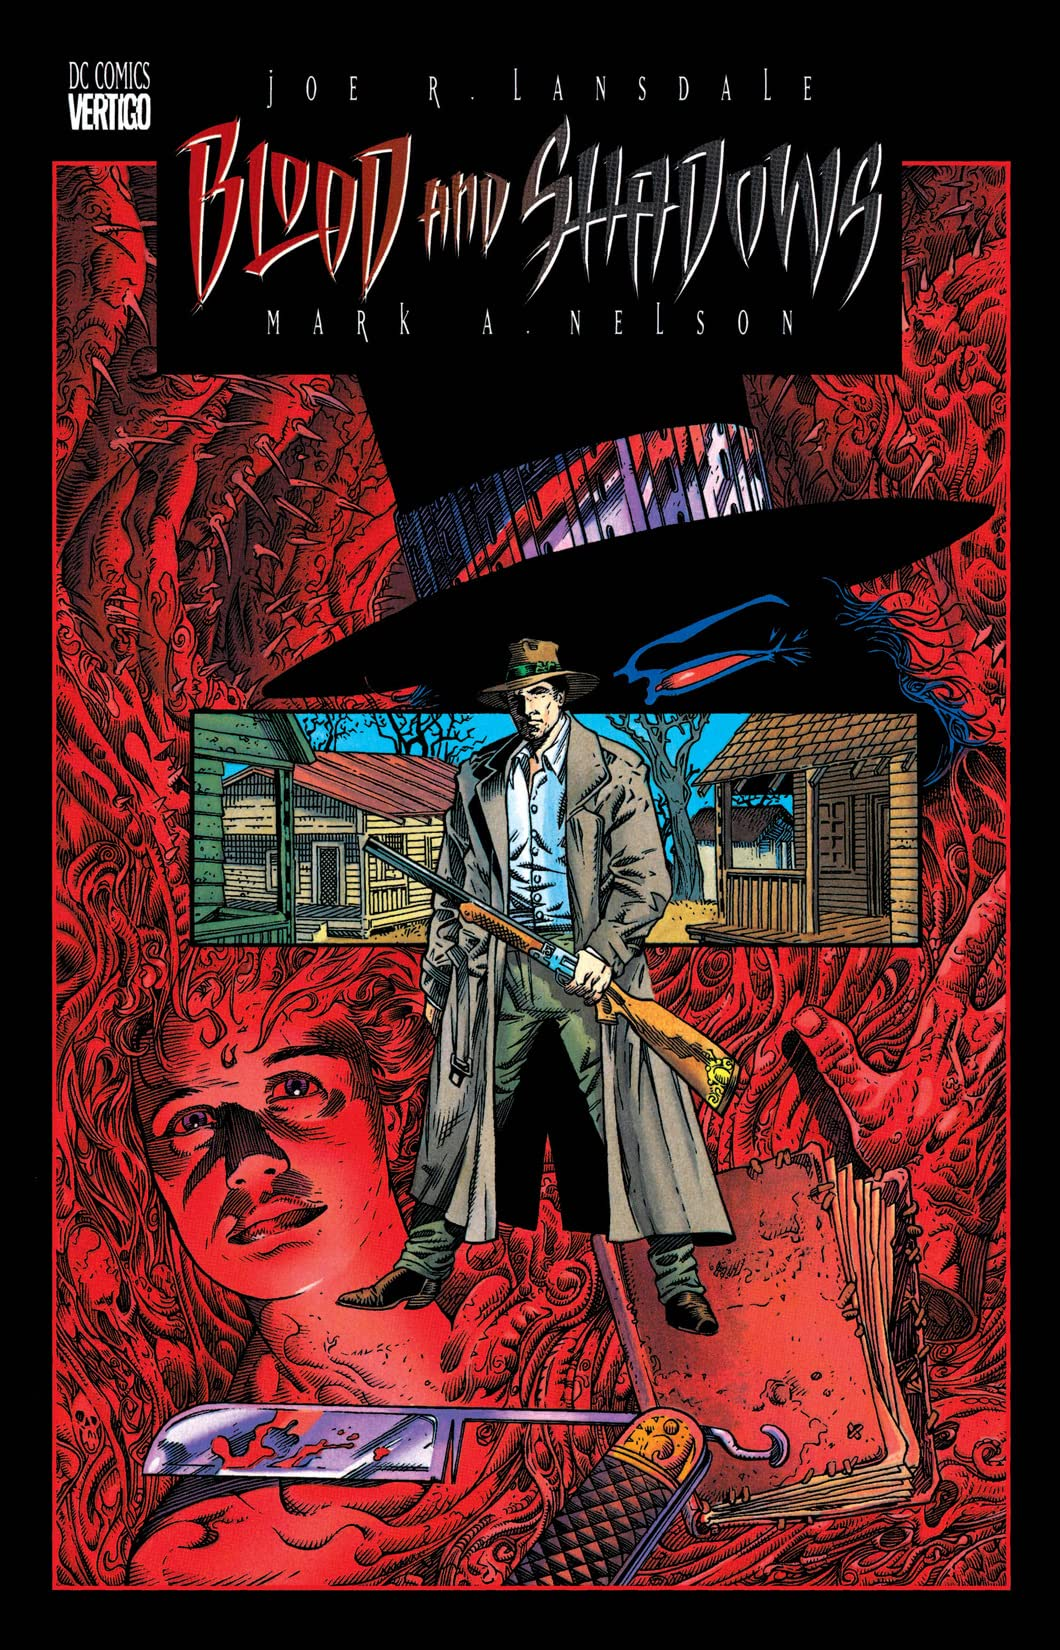 Blood & Shadows (1996) #1